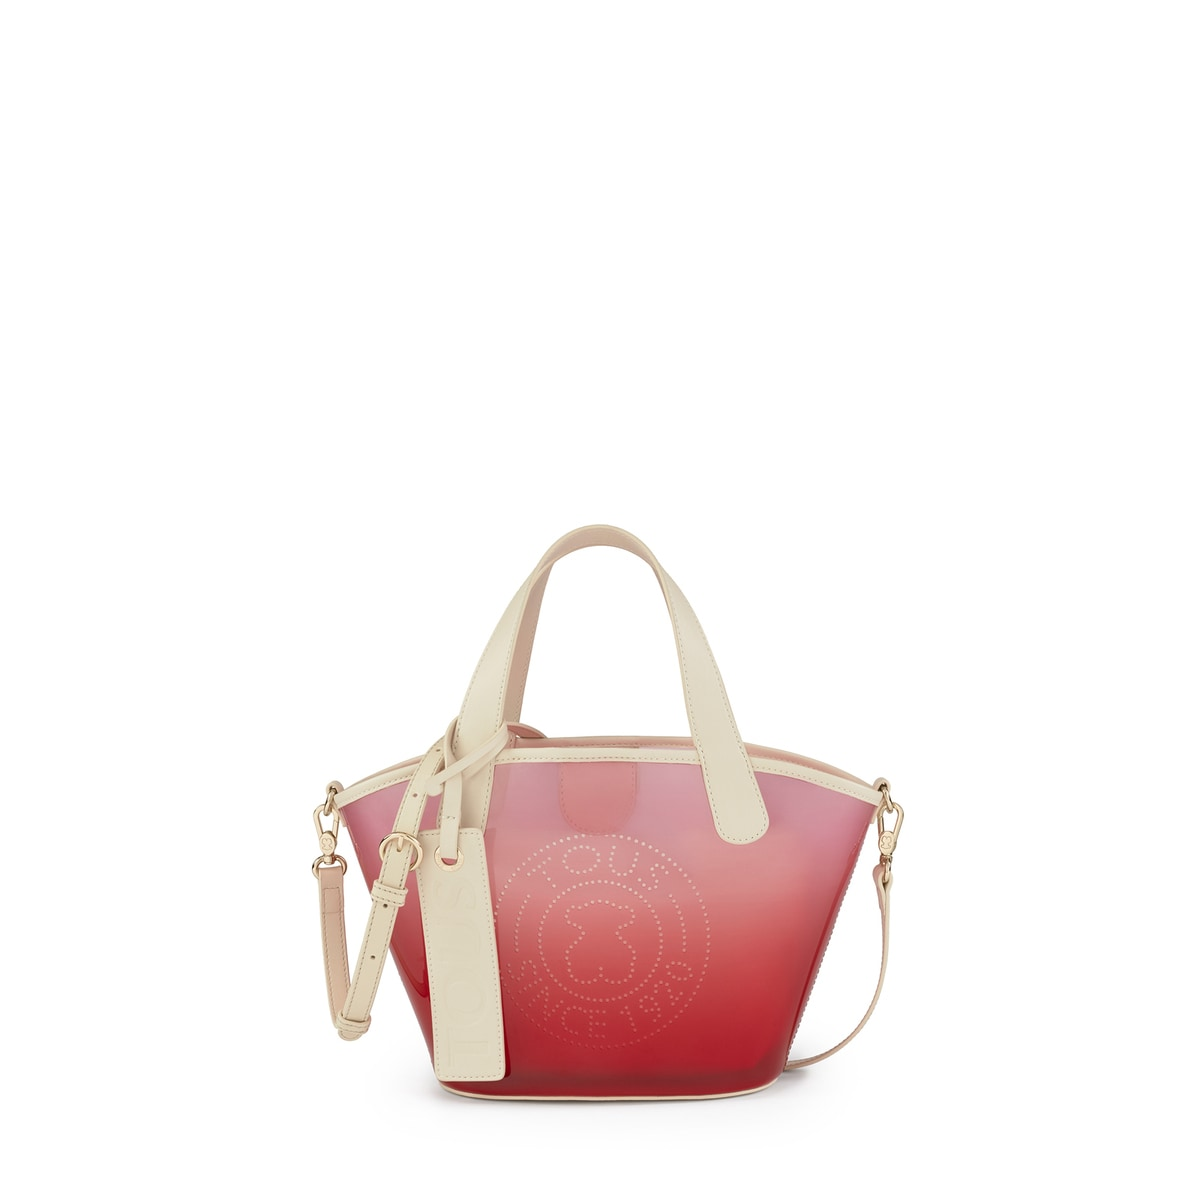 leather bag with colorful strap